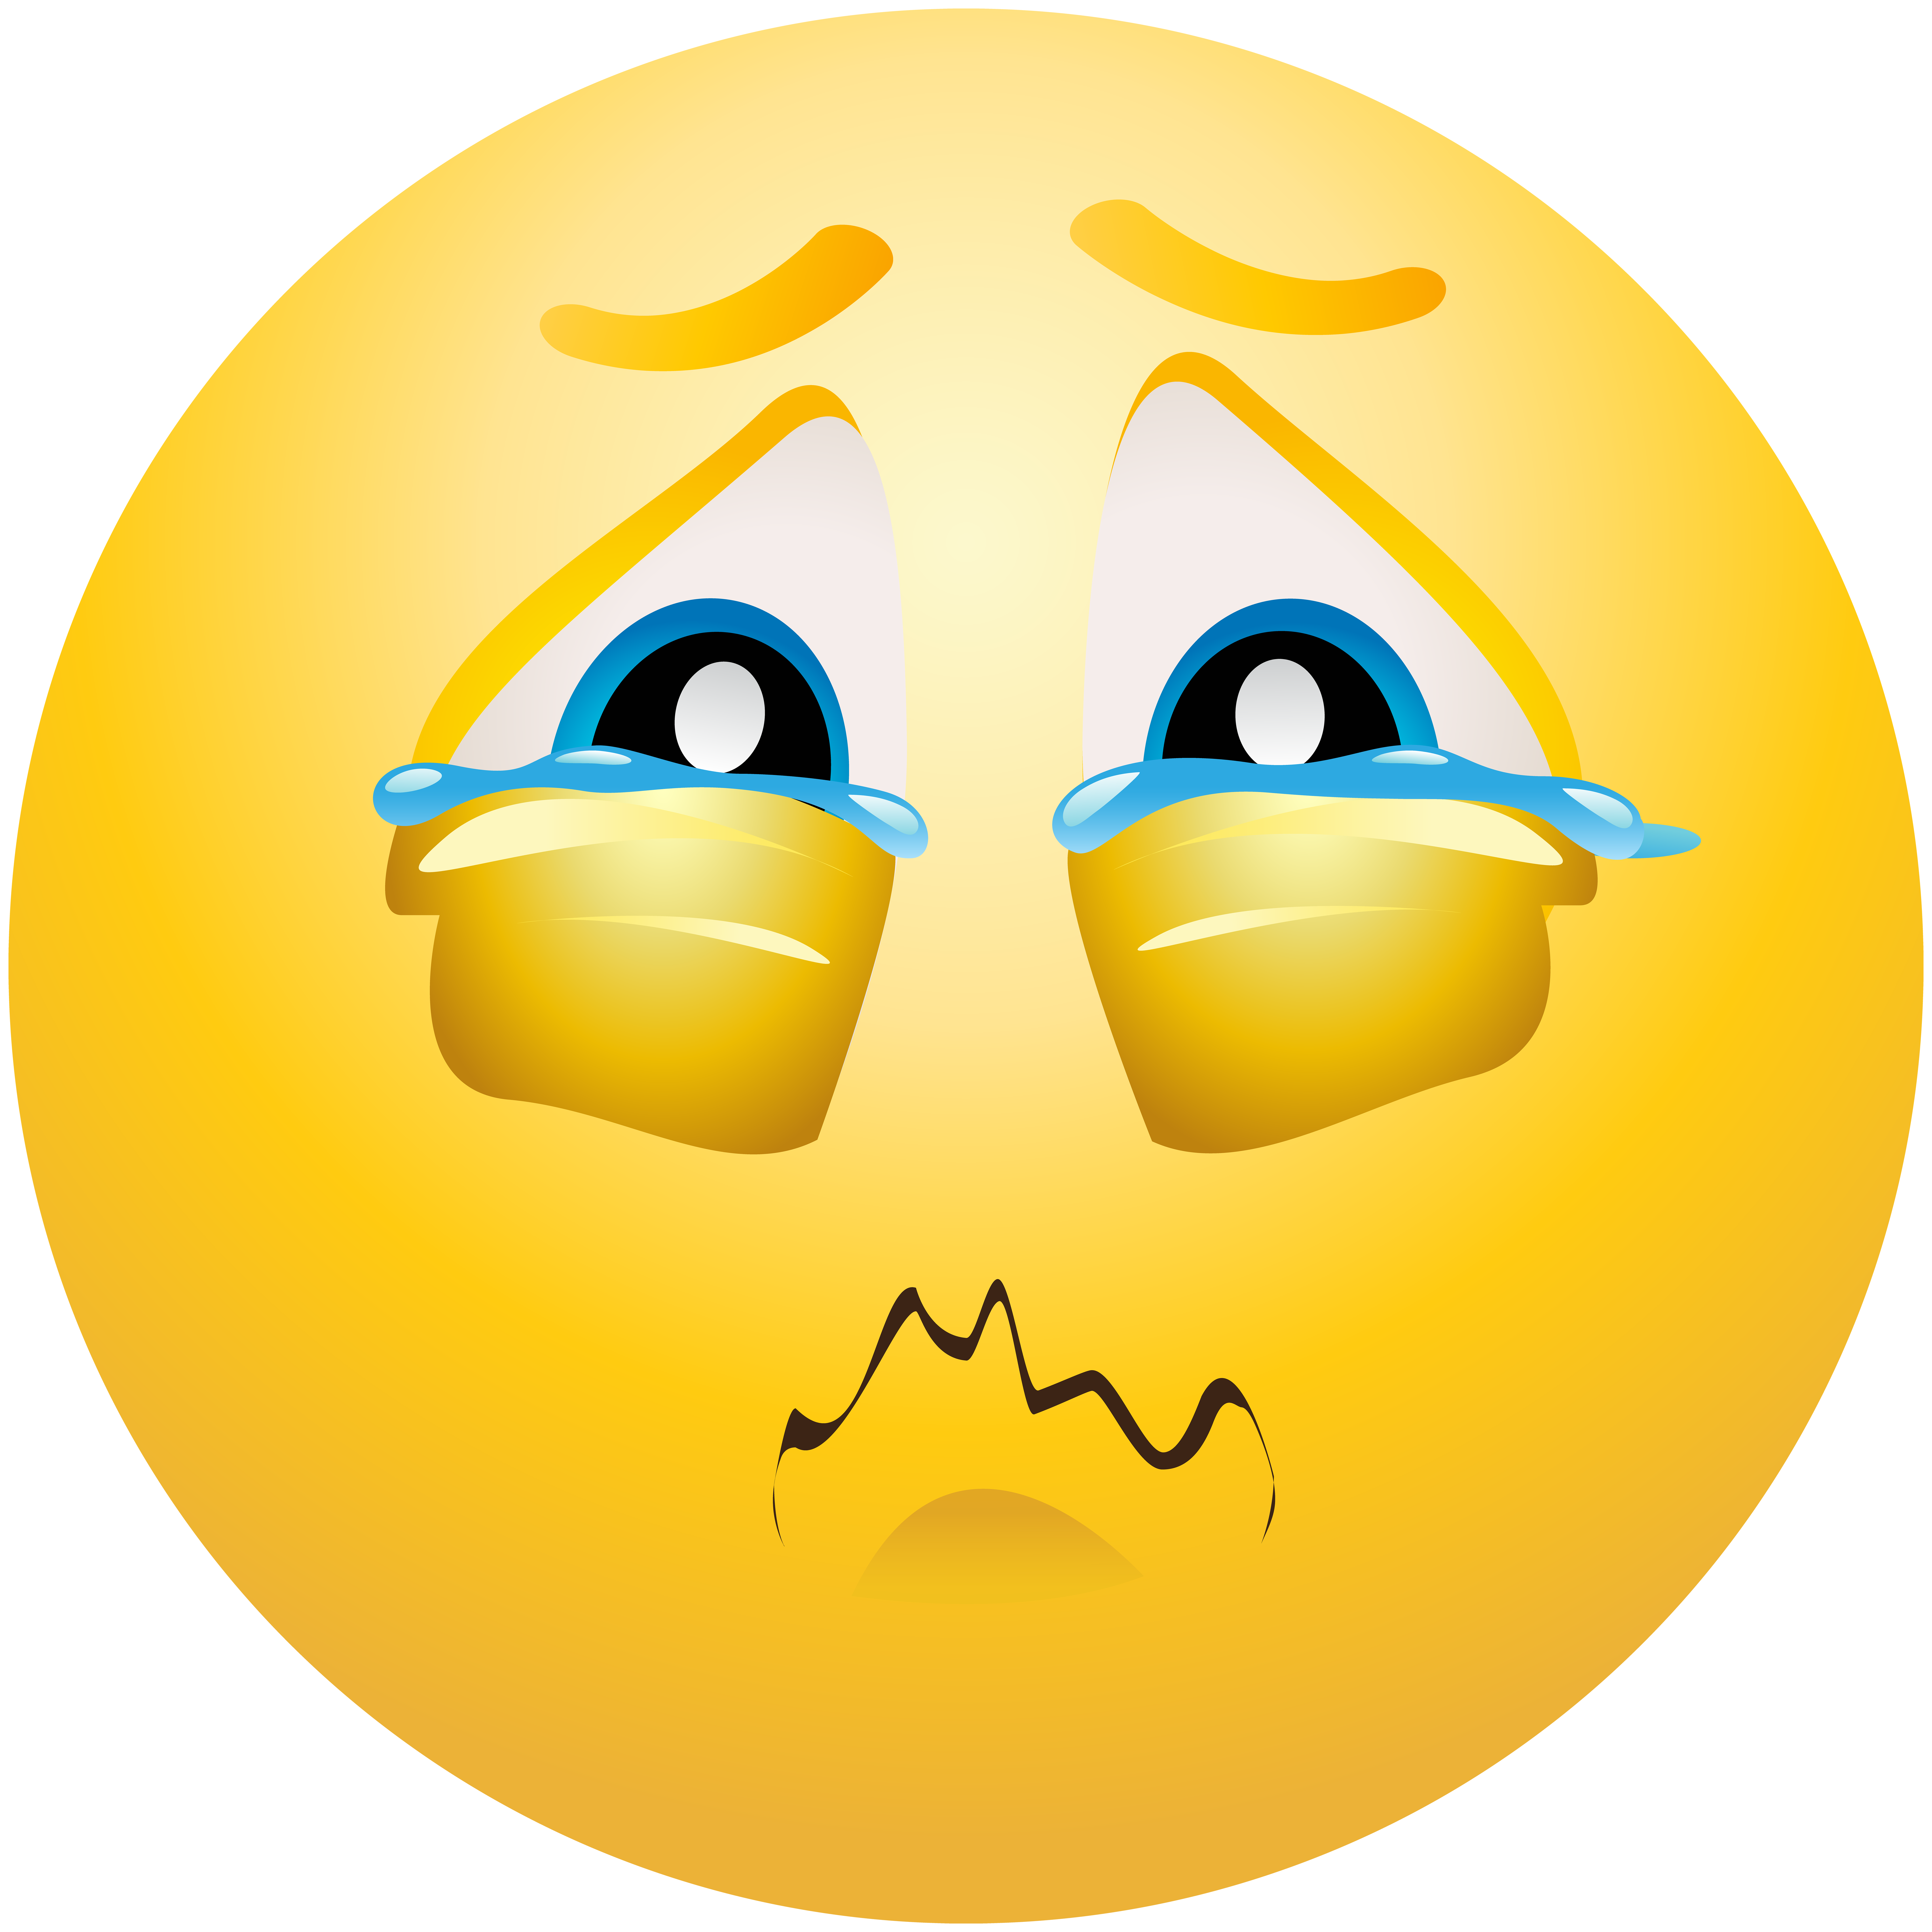 Crying smiley png. Emoticon best web clipart